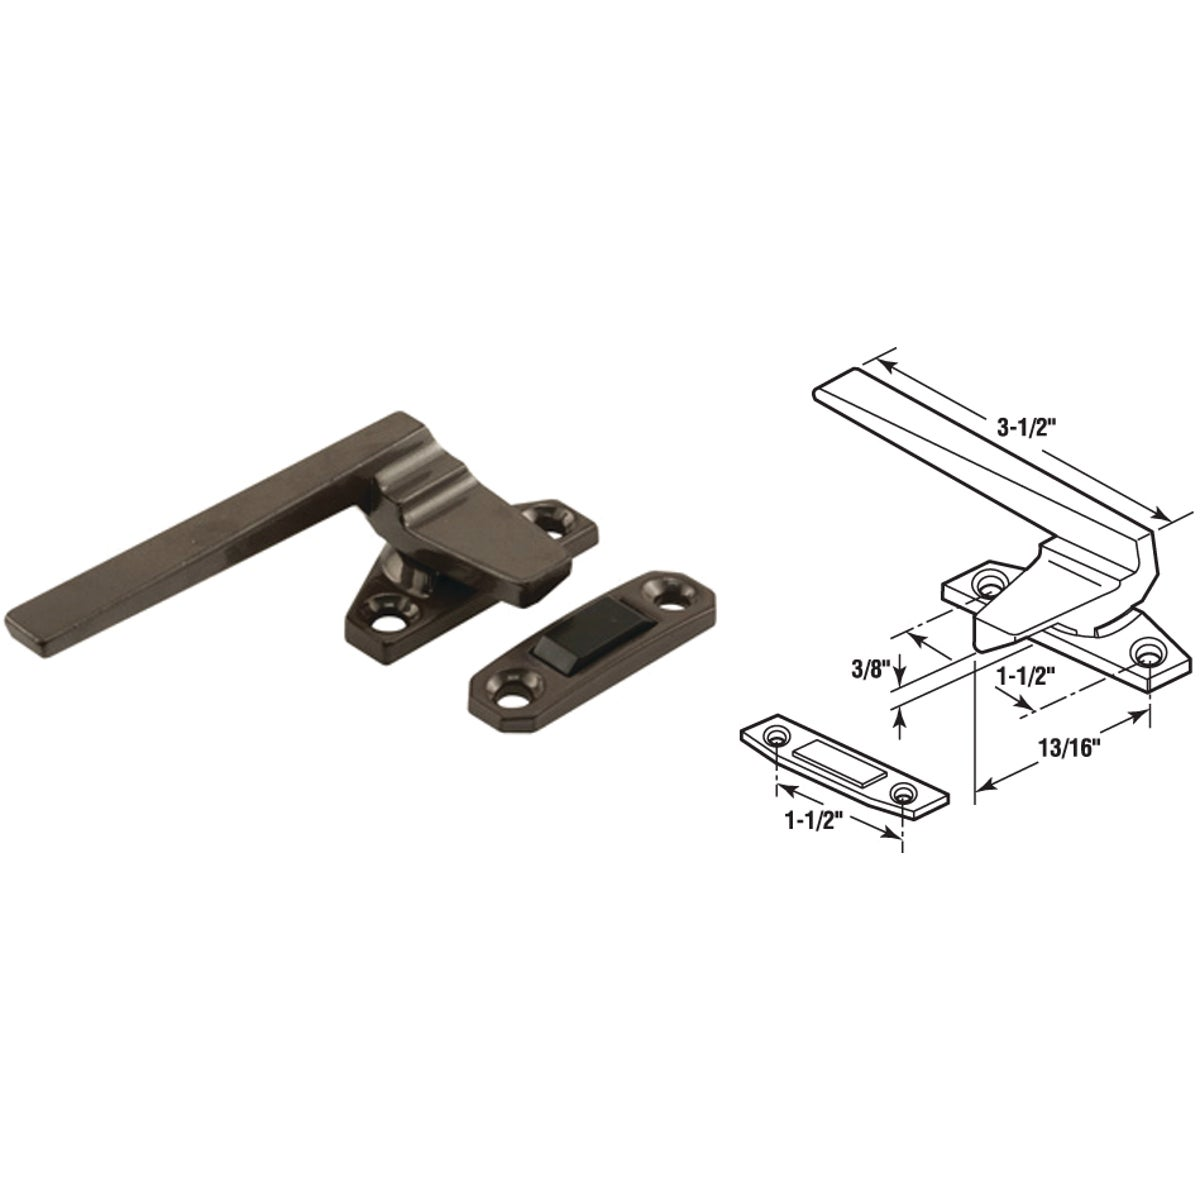 CASEMENT LOCKING HANDLE - 171924-R by Prime Line Products